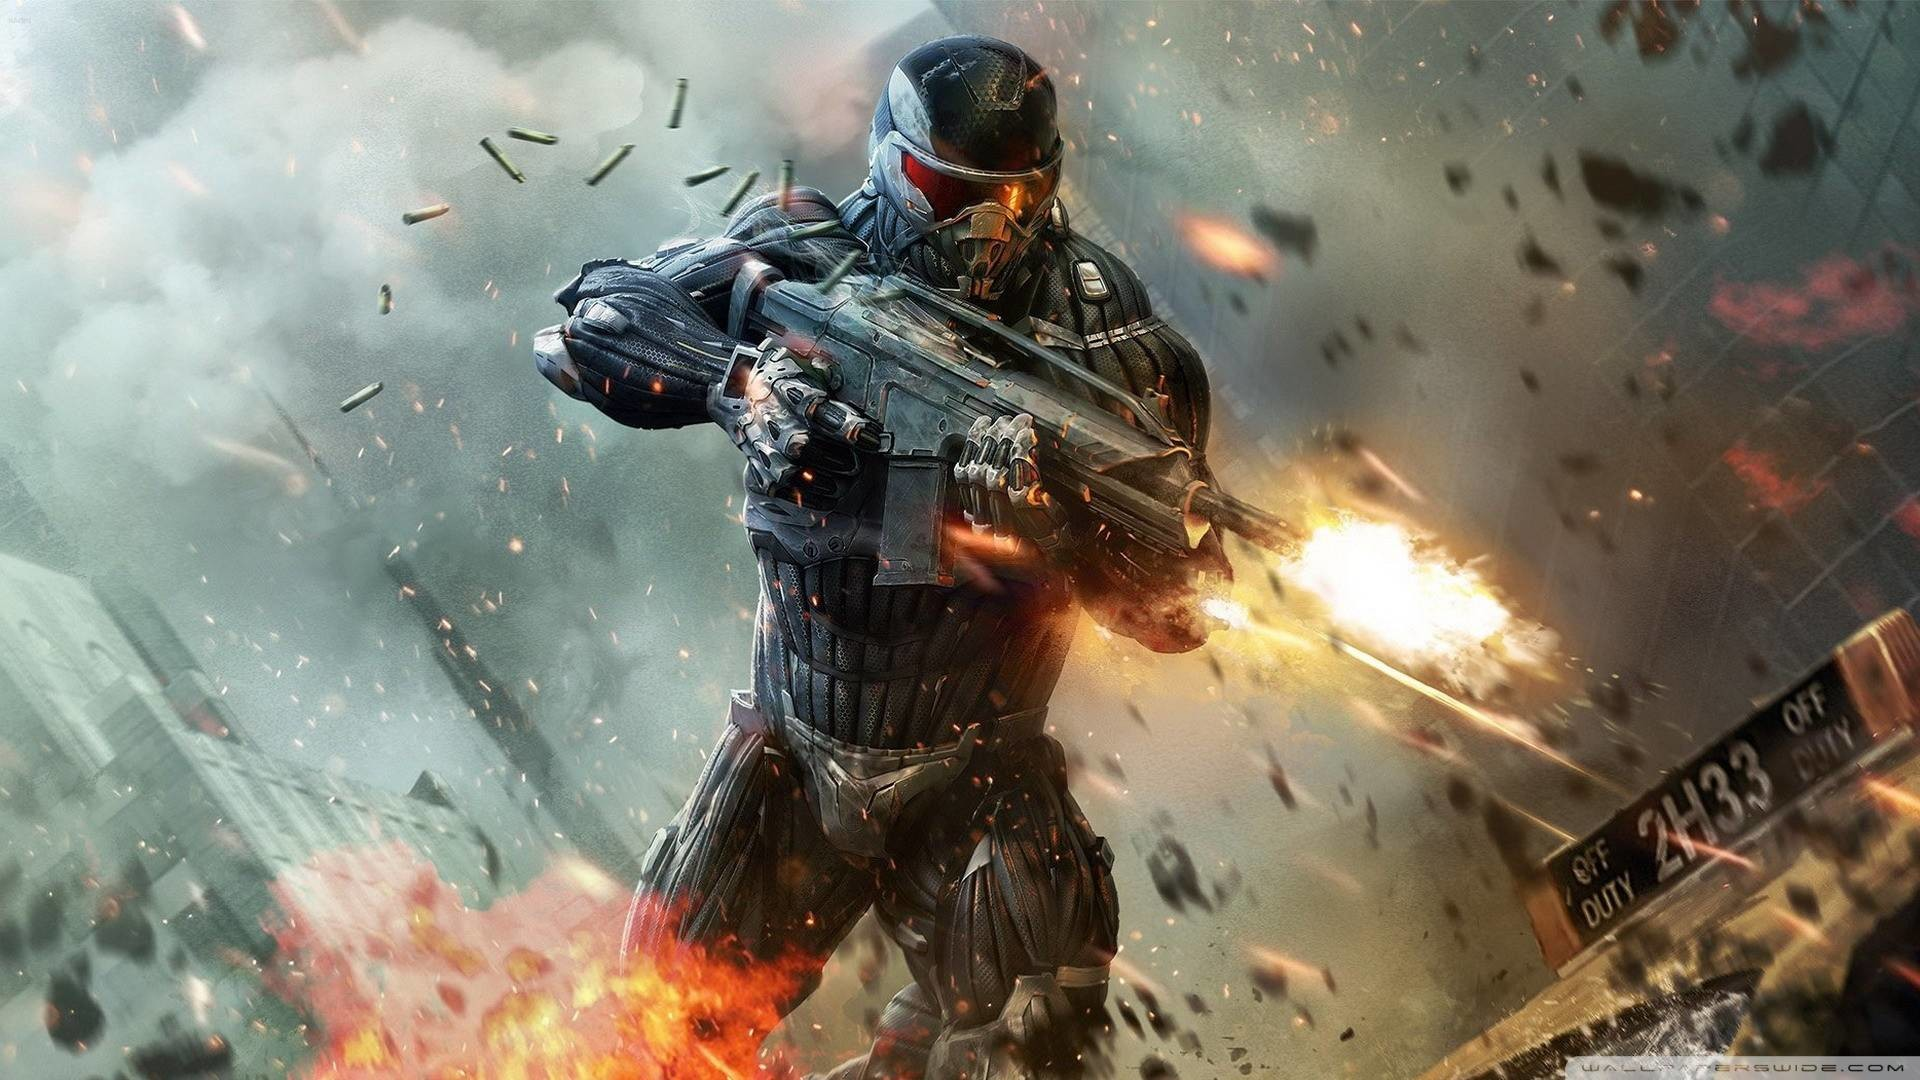 HD Wallpapers Widescreen 1080P 3D | View Full Size | More crysis 2 wallpaper  full hd